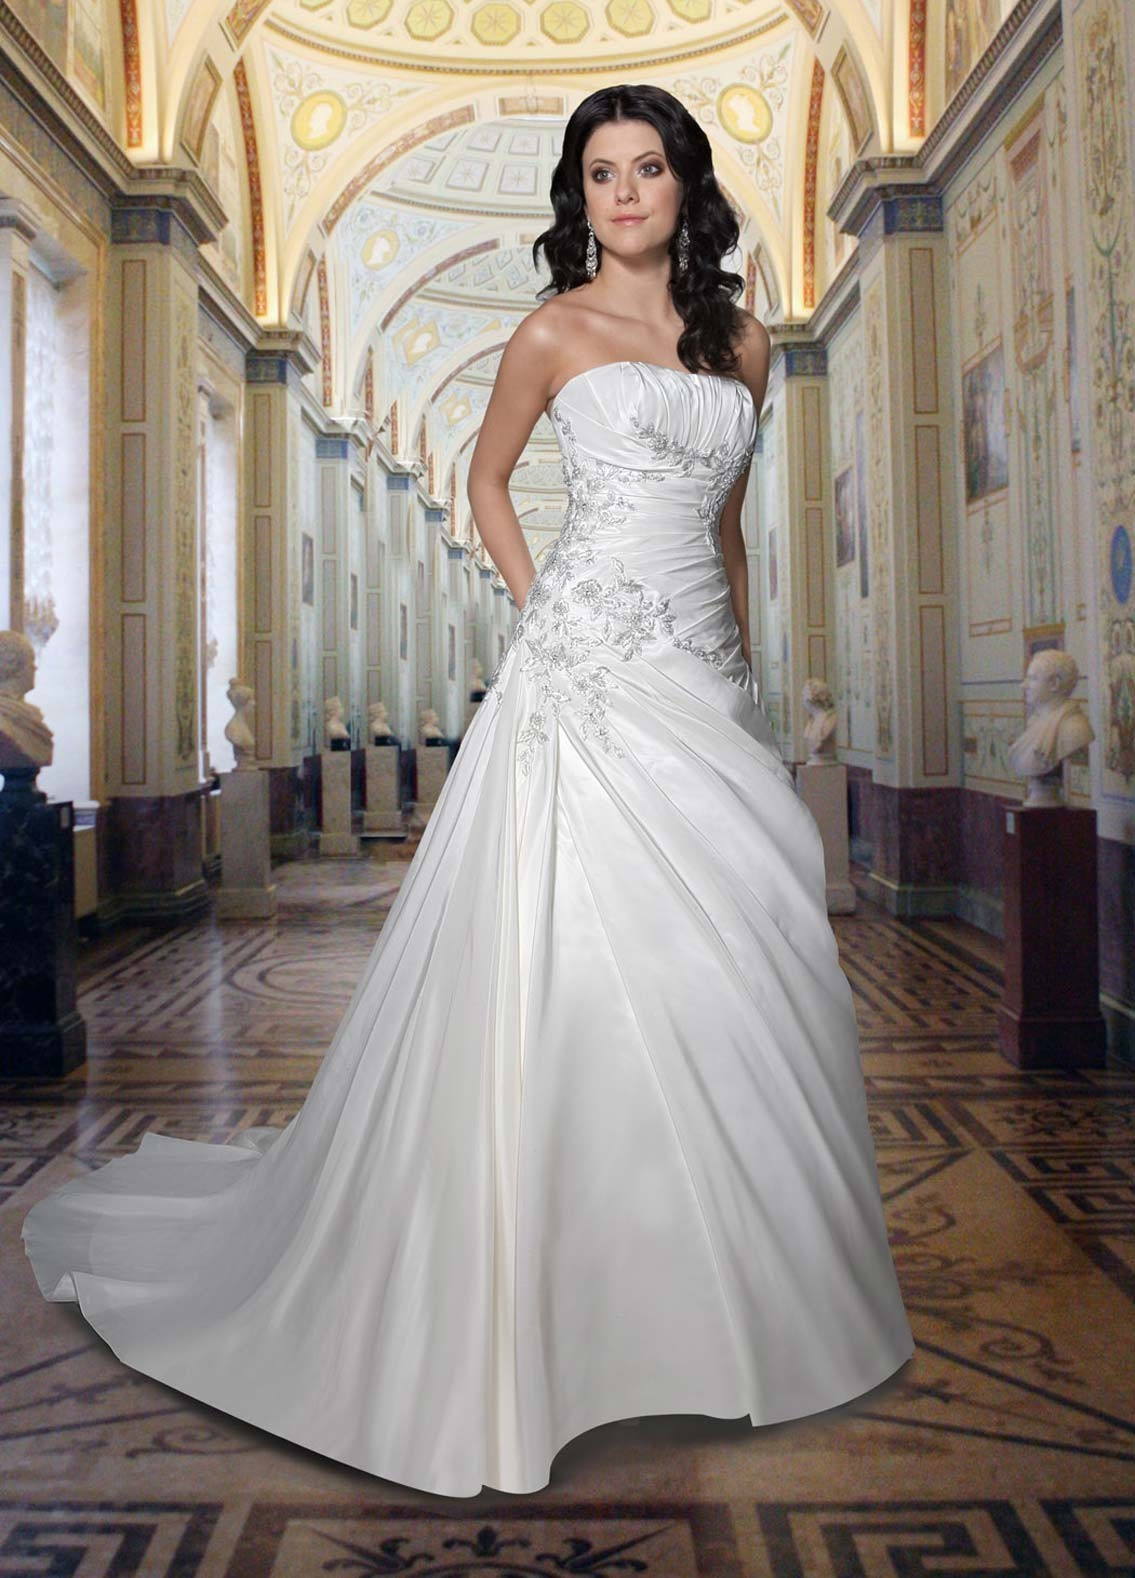 strapless wedding dresses_02